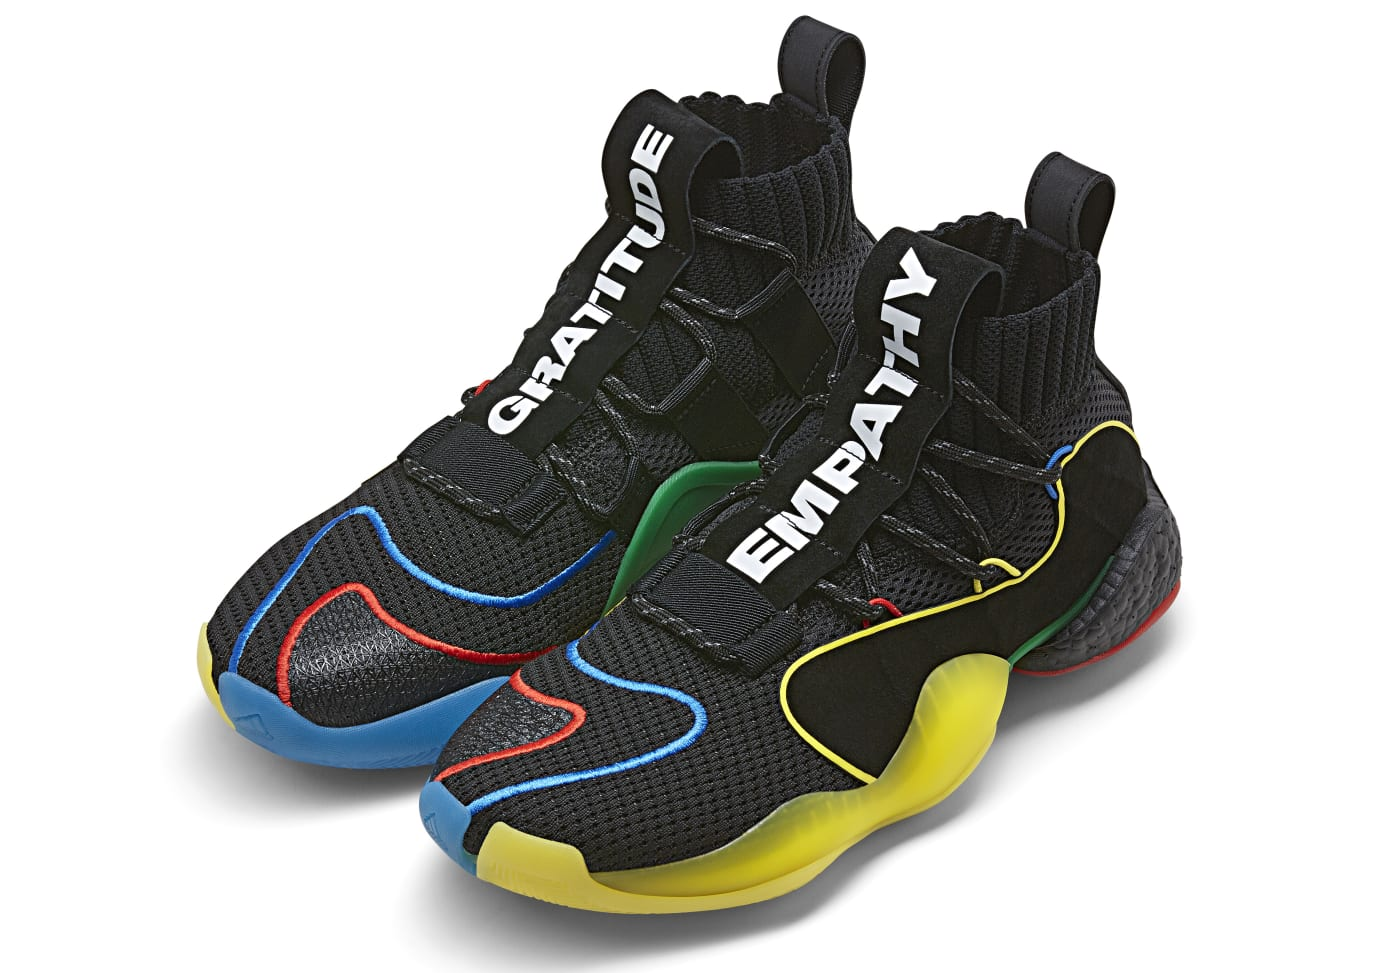 7a942b713c745 Pharrell x Adidas Crazy BYW X  Core Black Green Supplier Color ...